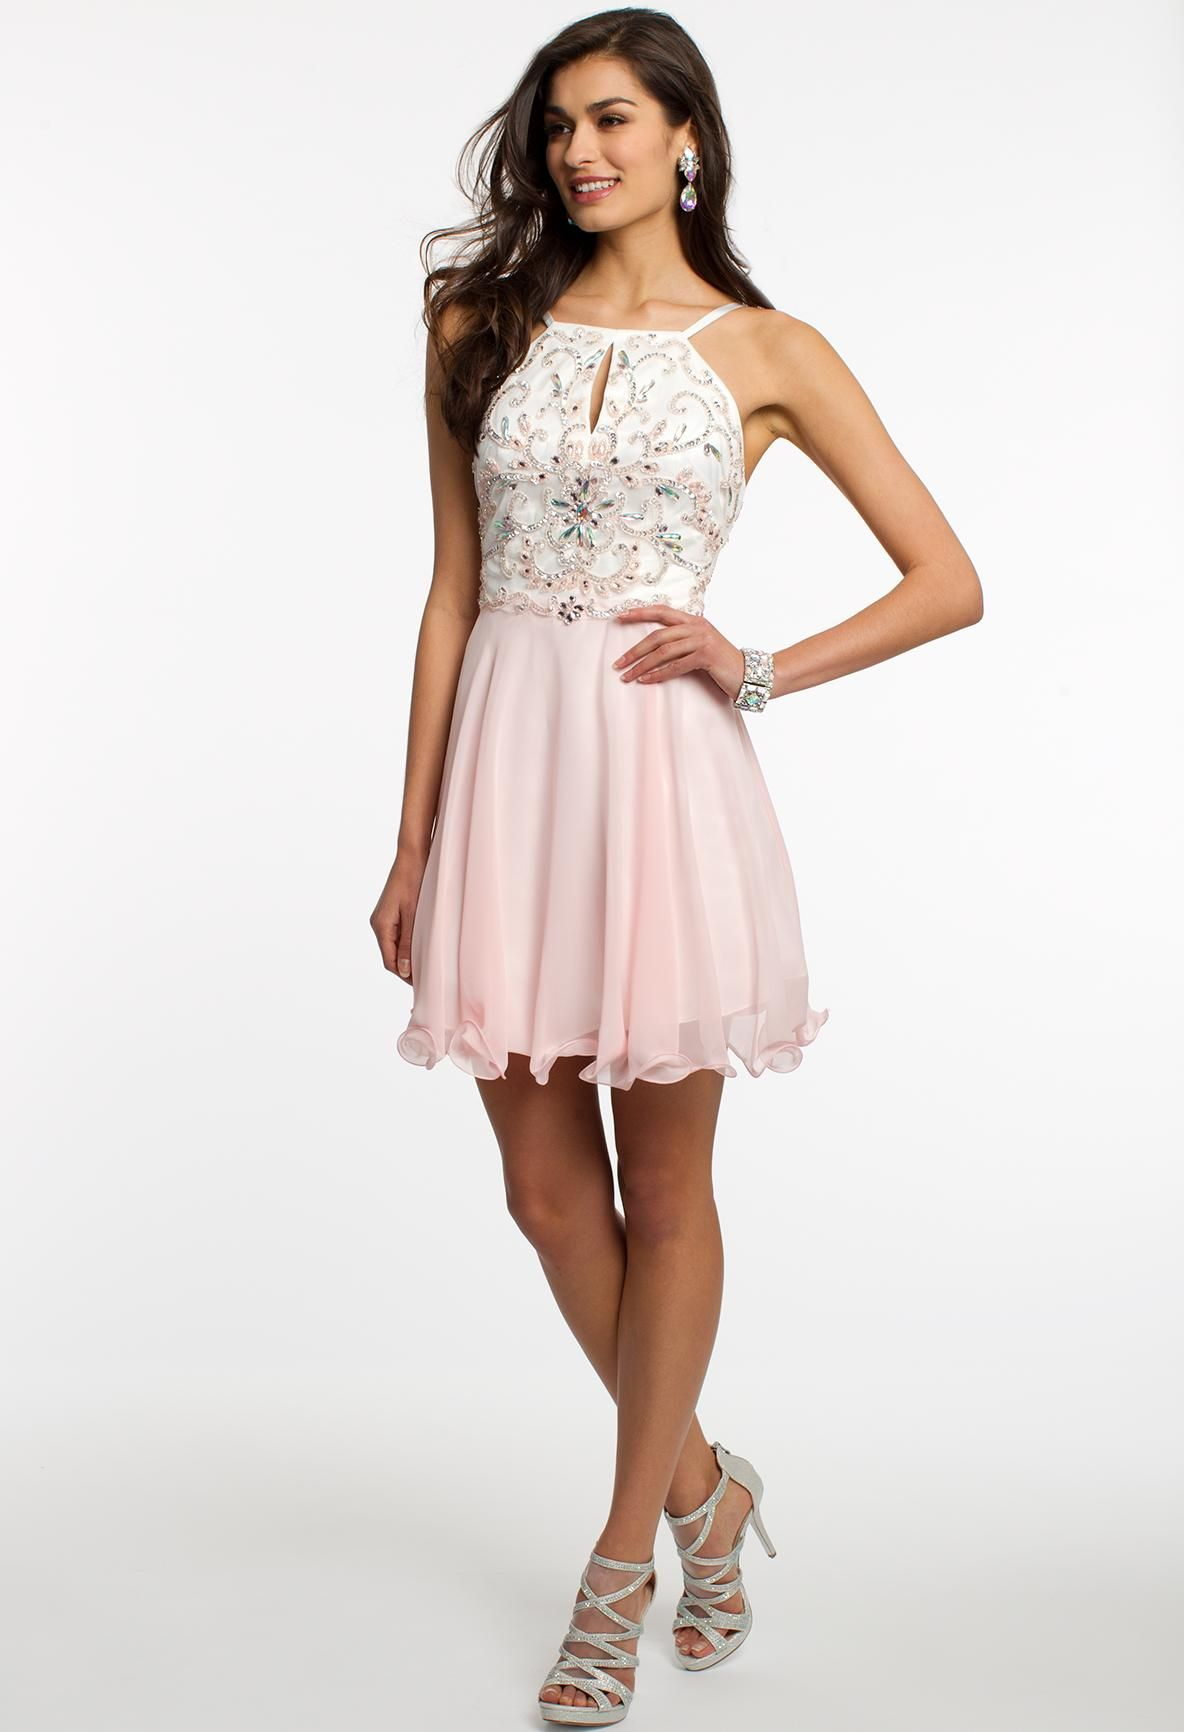 Chiffon dress with beaded bodice camillelavie clvprom prom